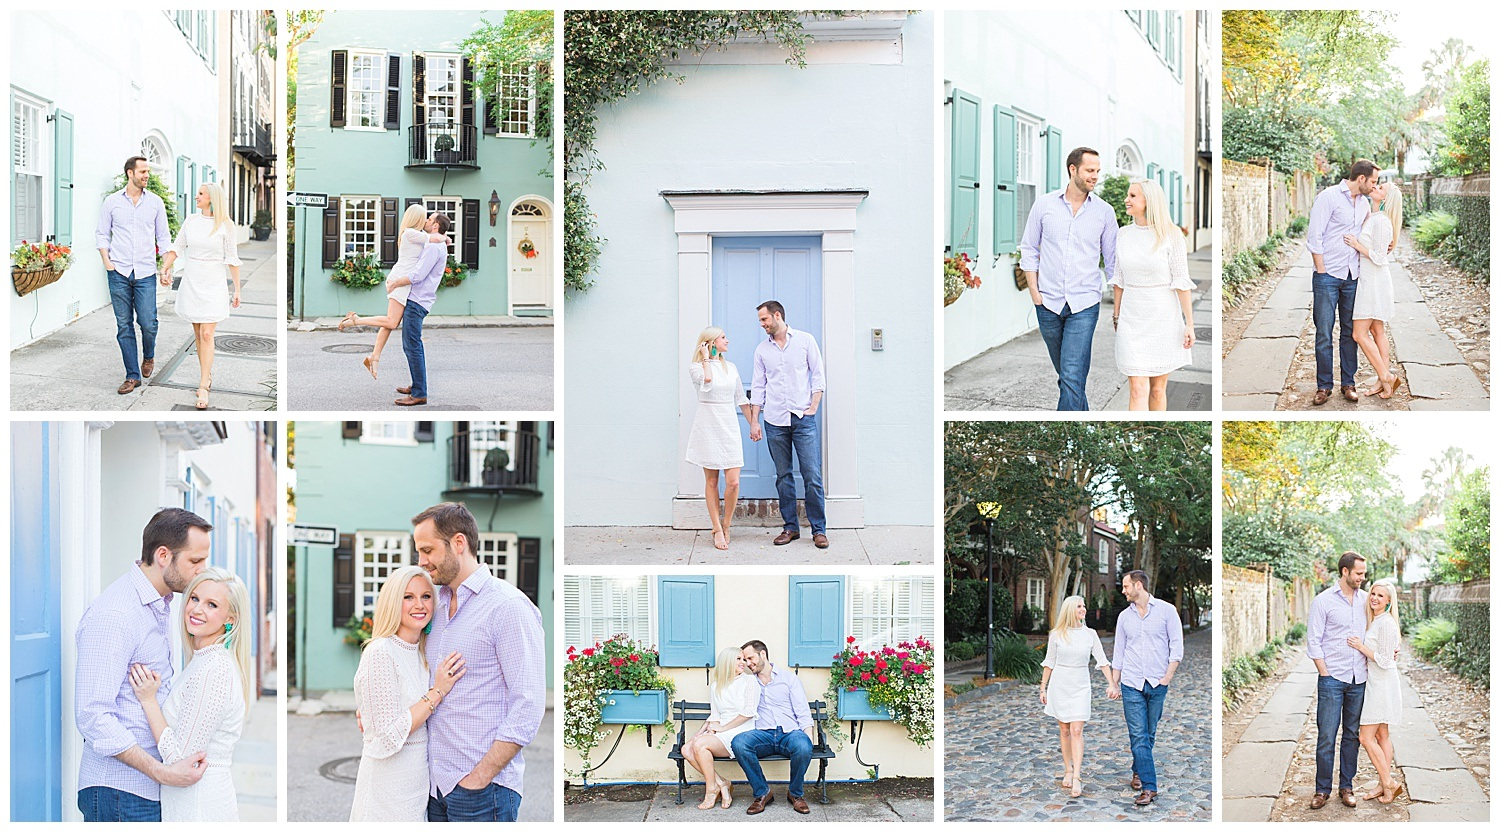 downtown-charleston-rainbow-row-engagement-kailee-dimeglio-photography-2.jpg